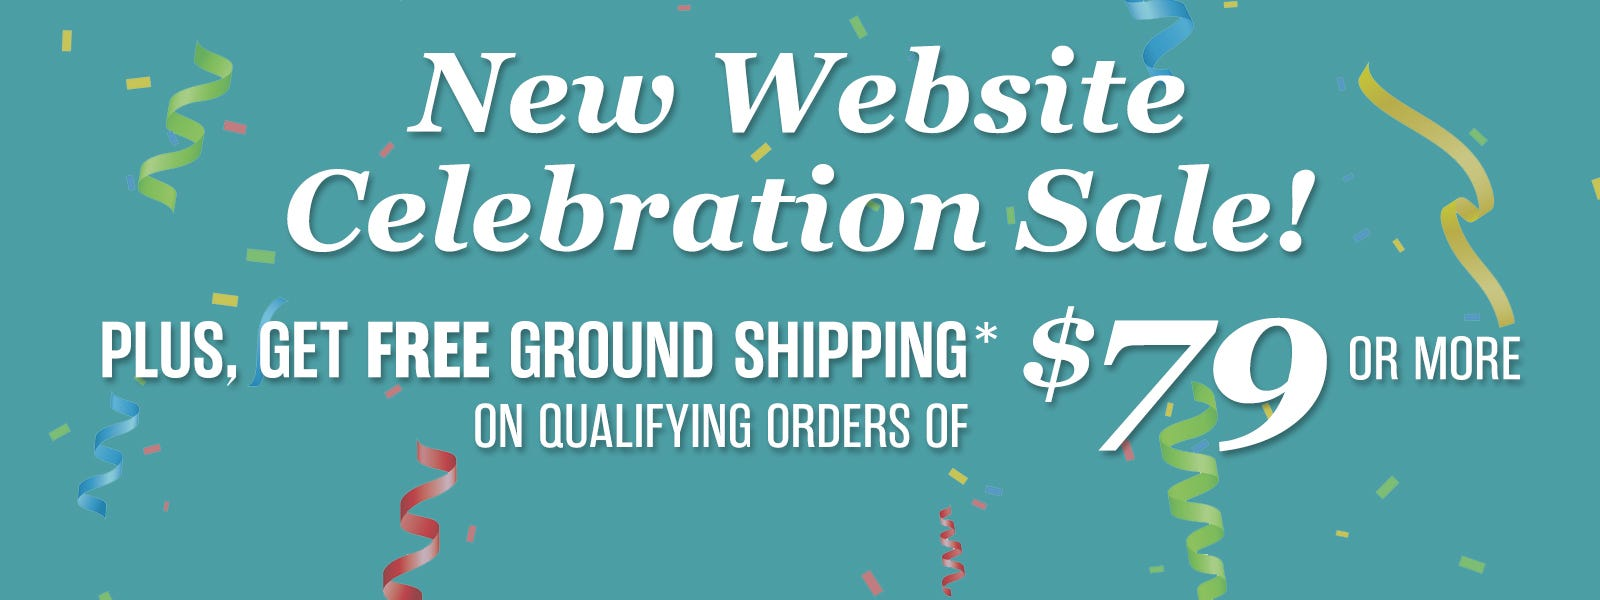 New Website Celebration Sale!